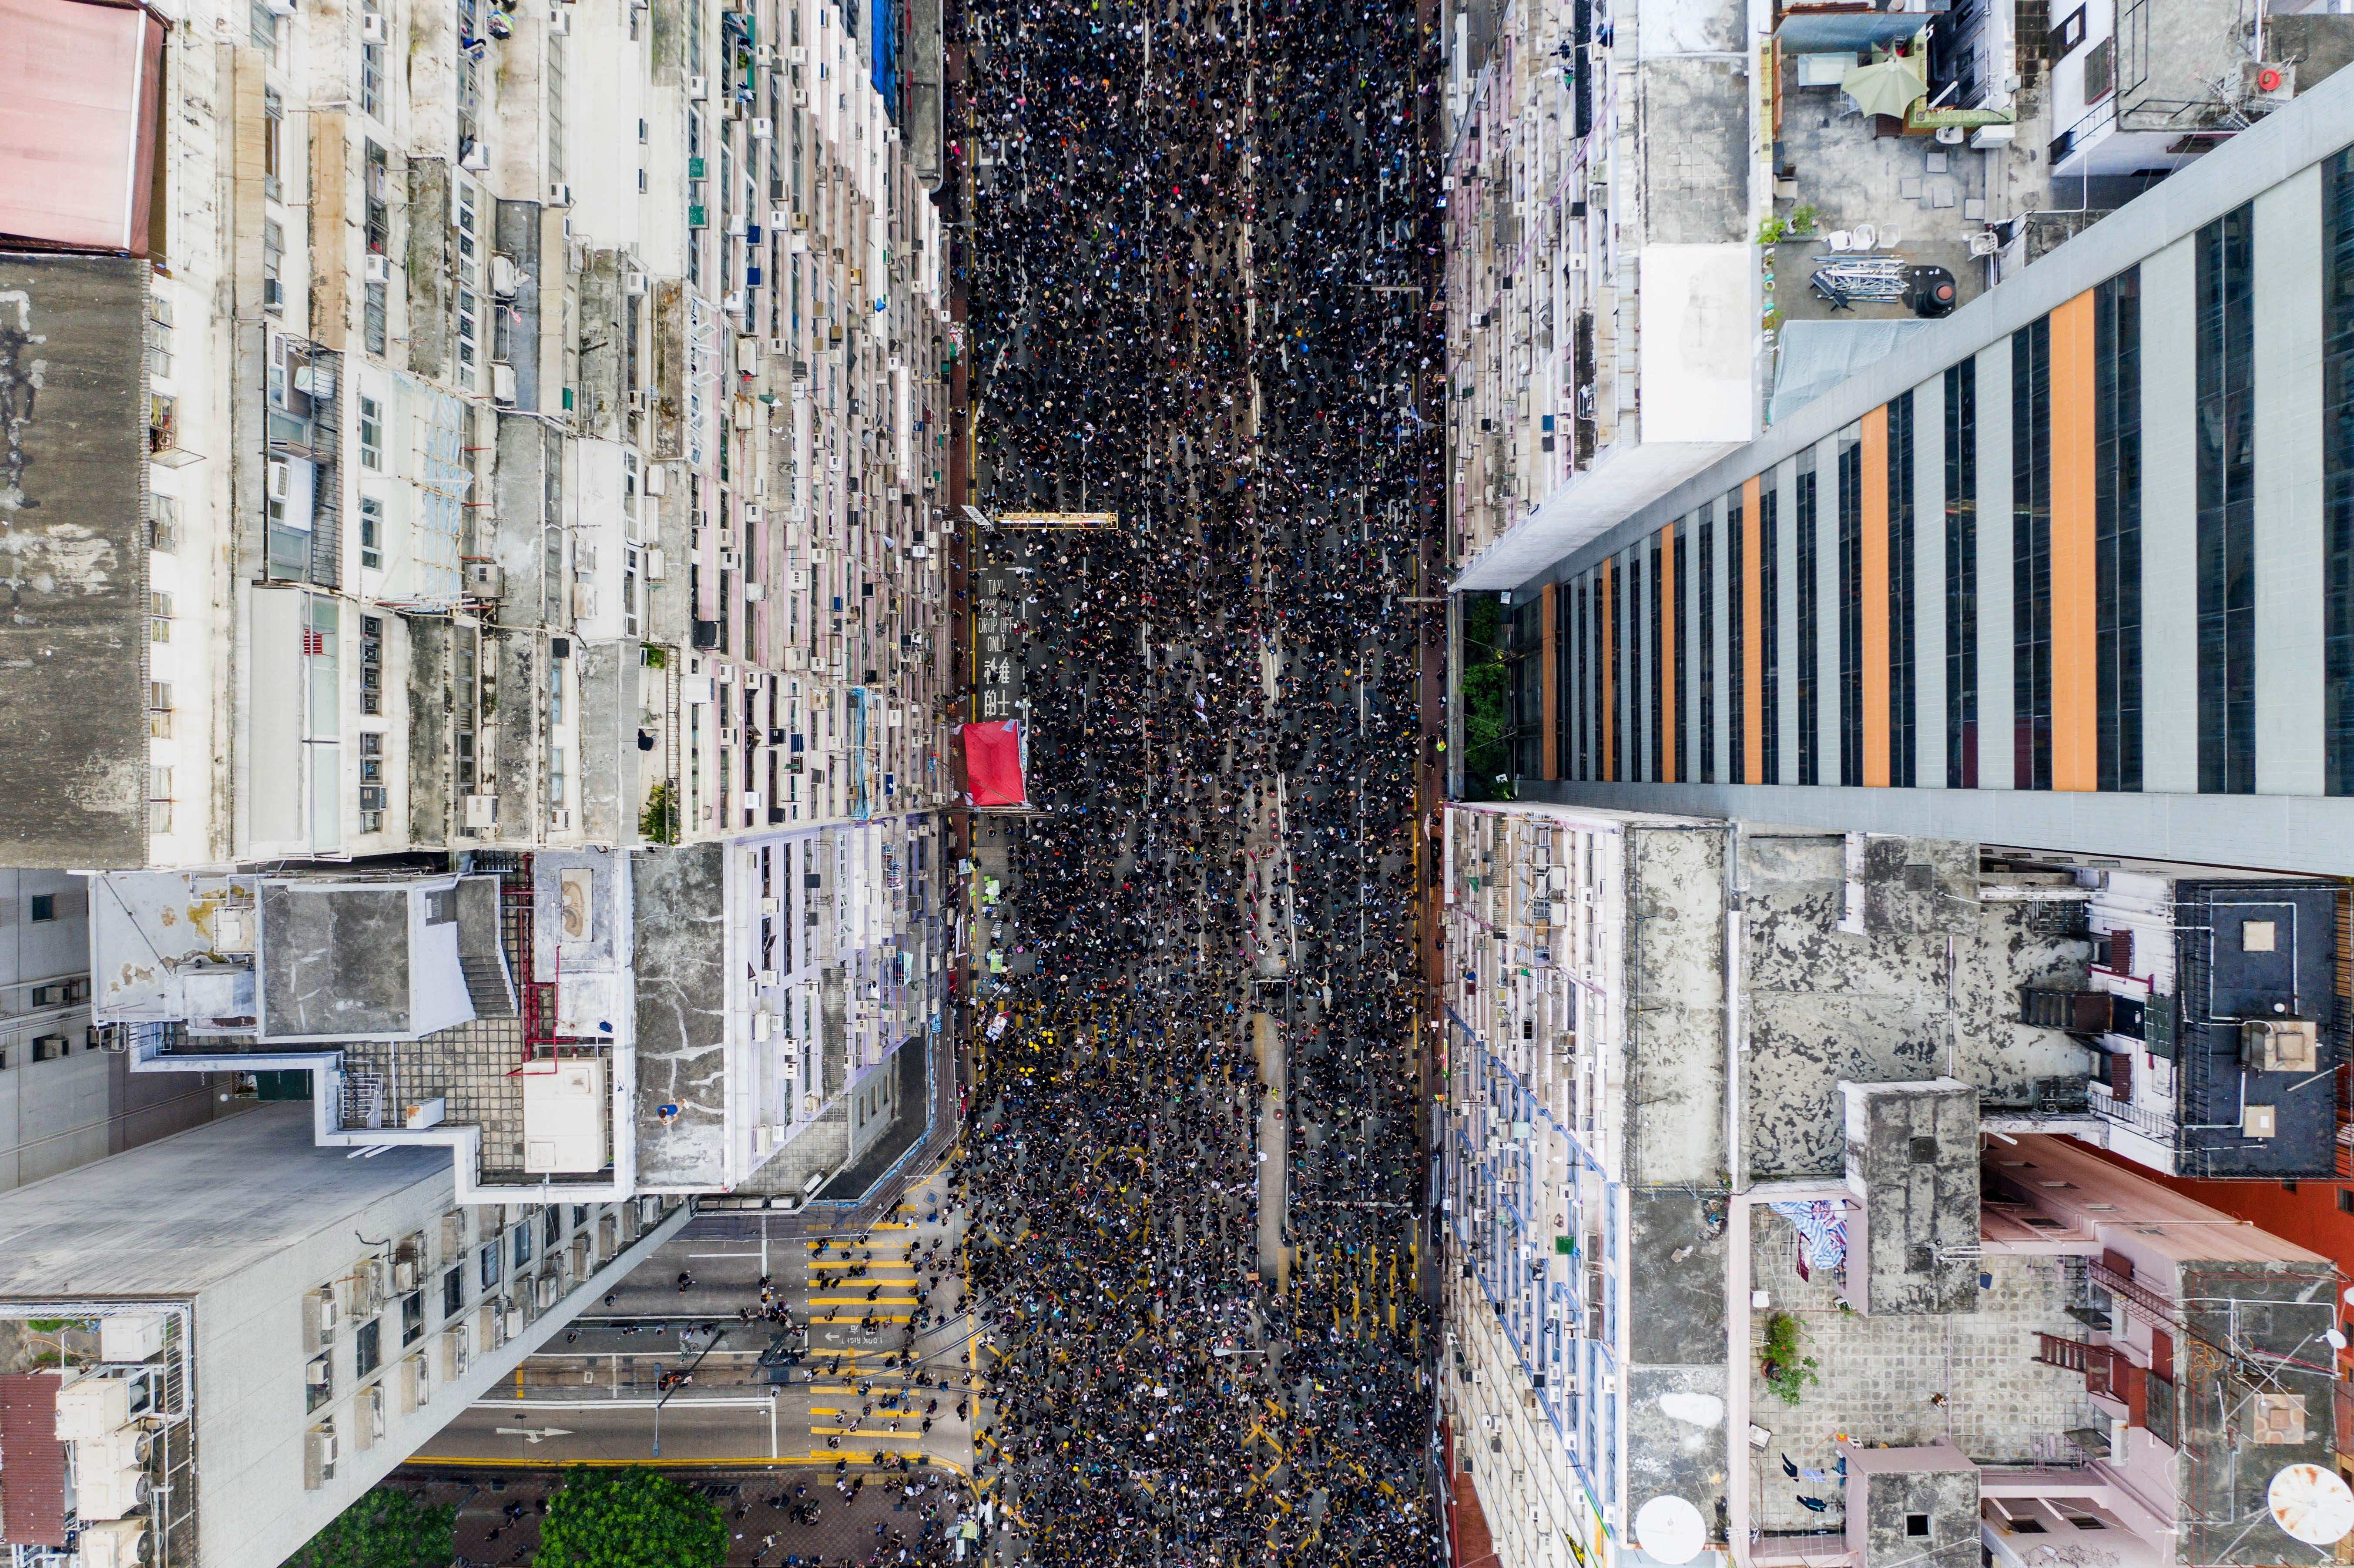 Tens of thousands of protesters march against a proposed extradition law in Hong Kong on June 16, 2019.